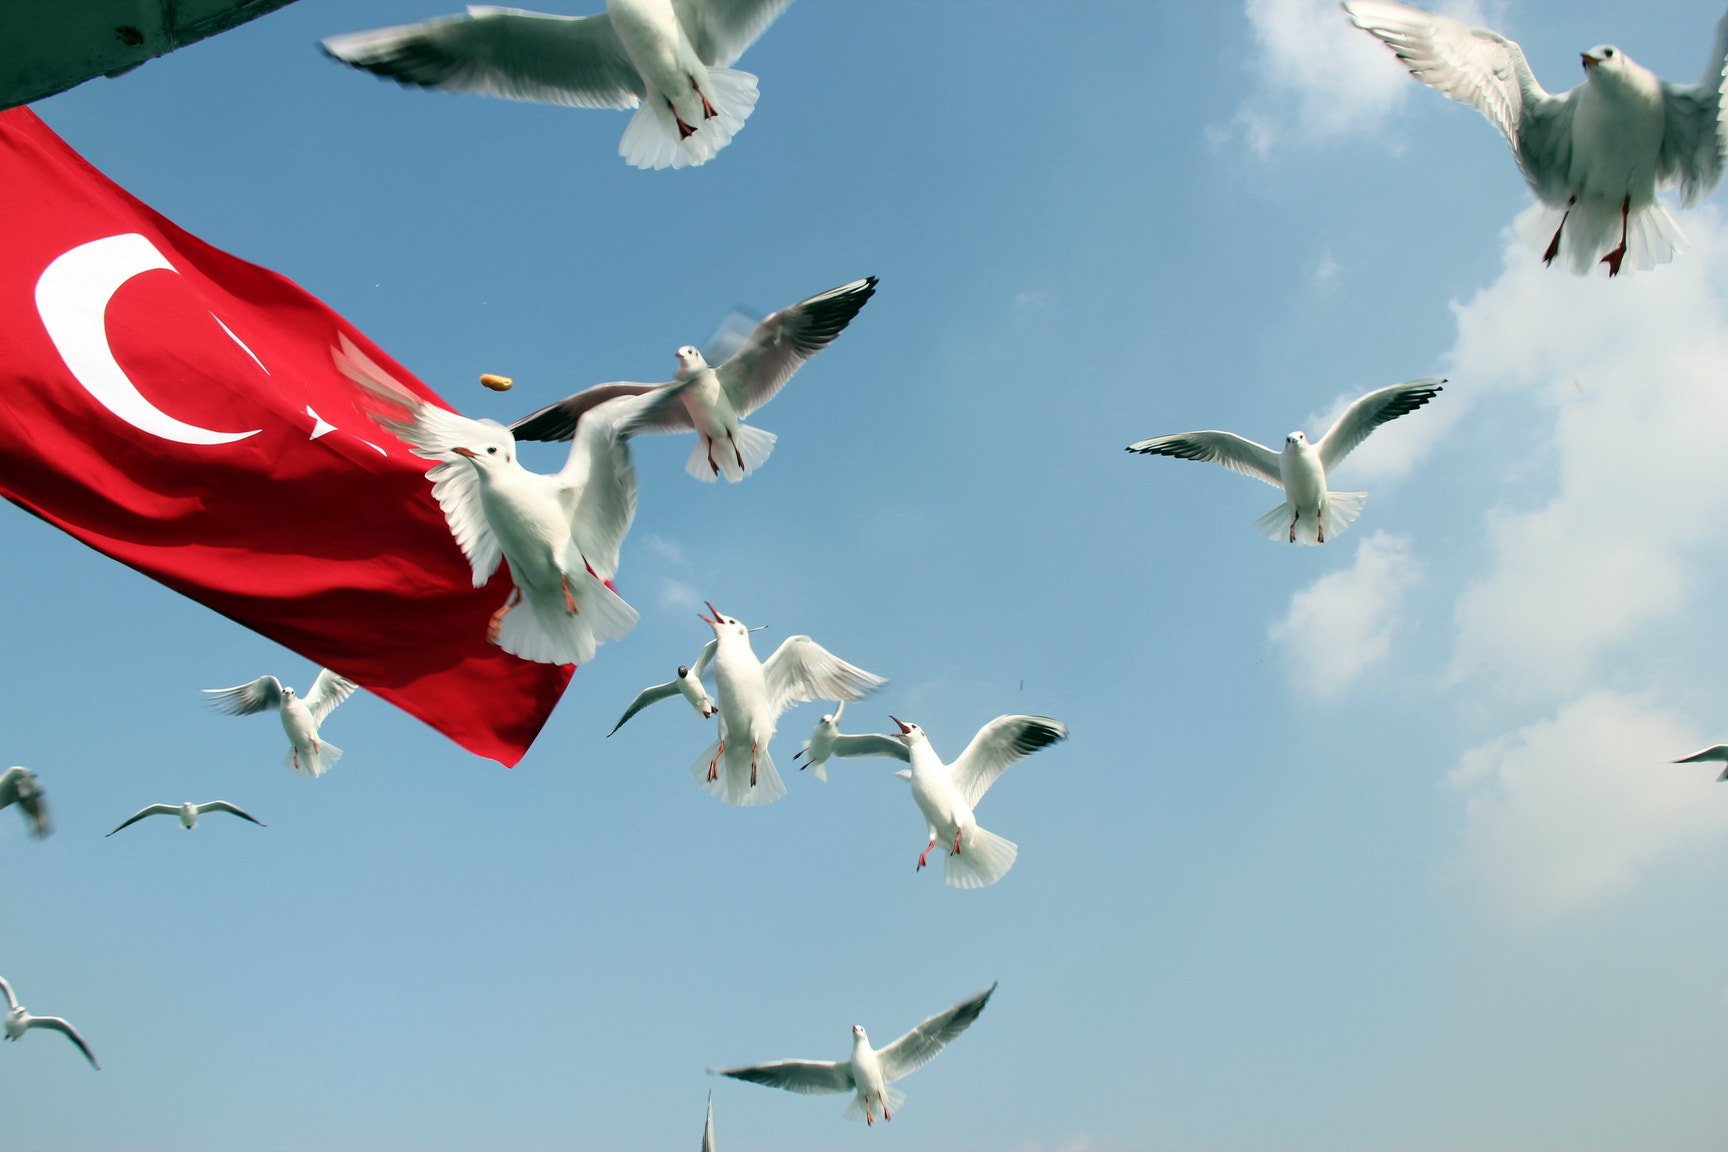 Photograph Seagull catching foods in the sky by Pasiban ISMAIL on 500px